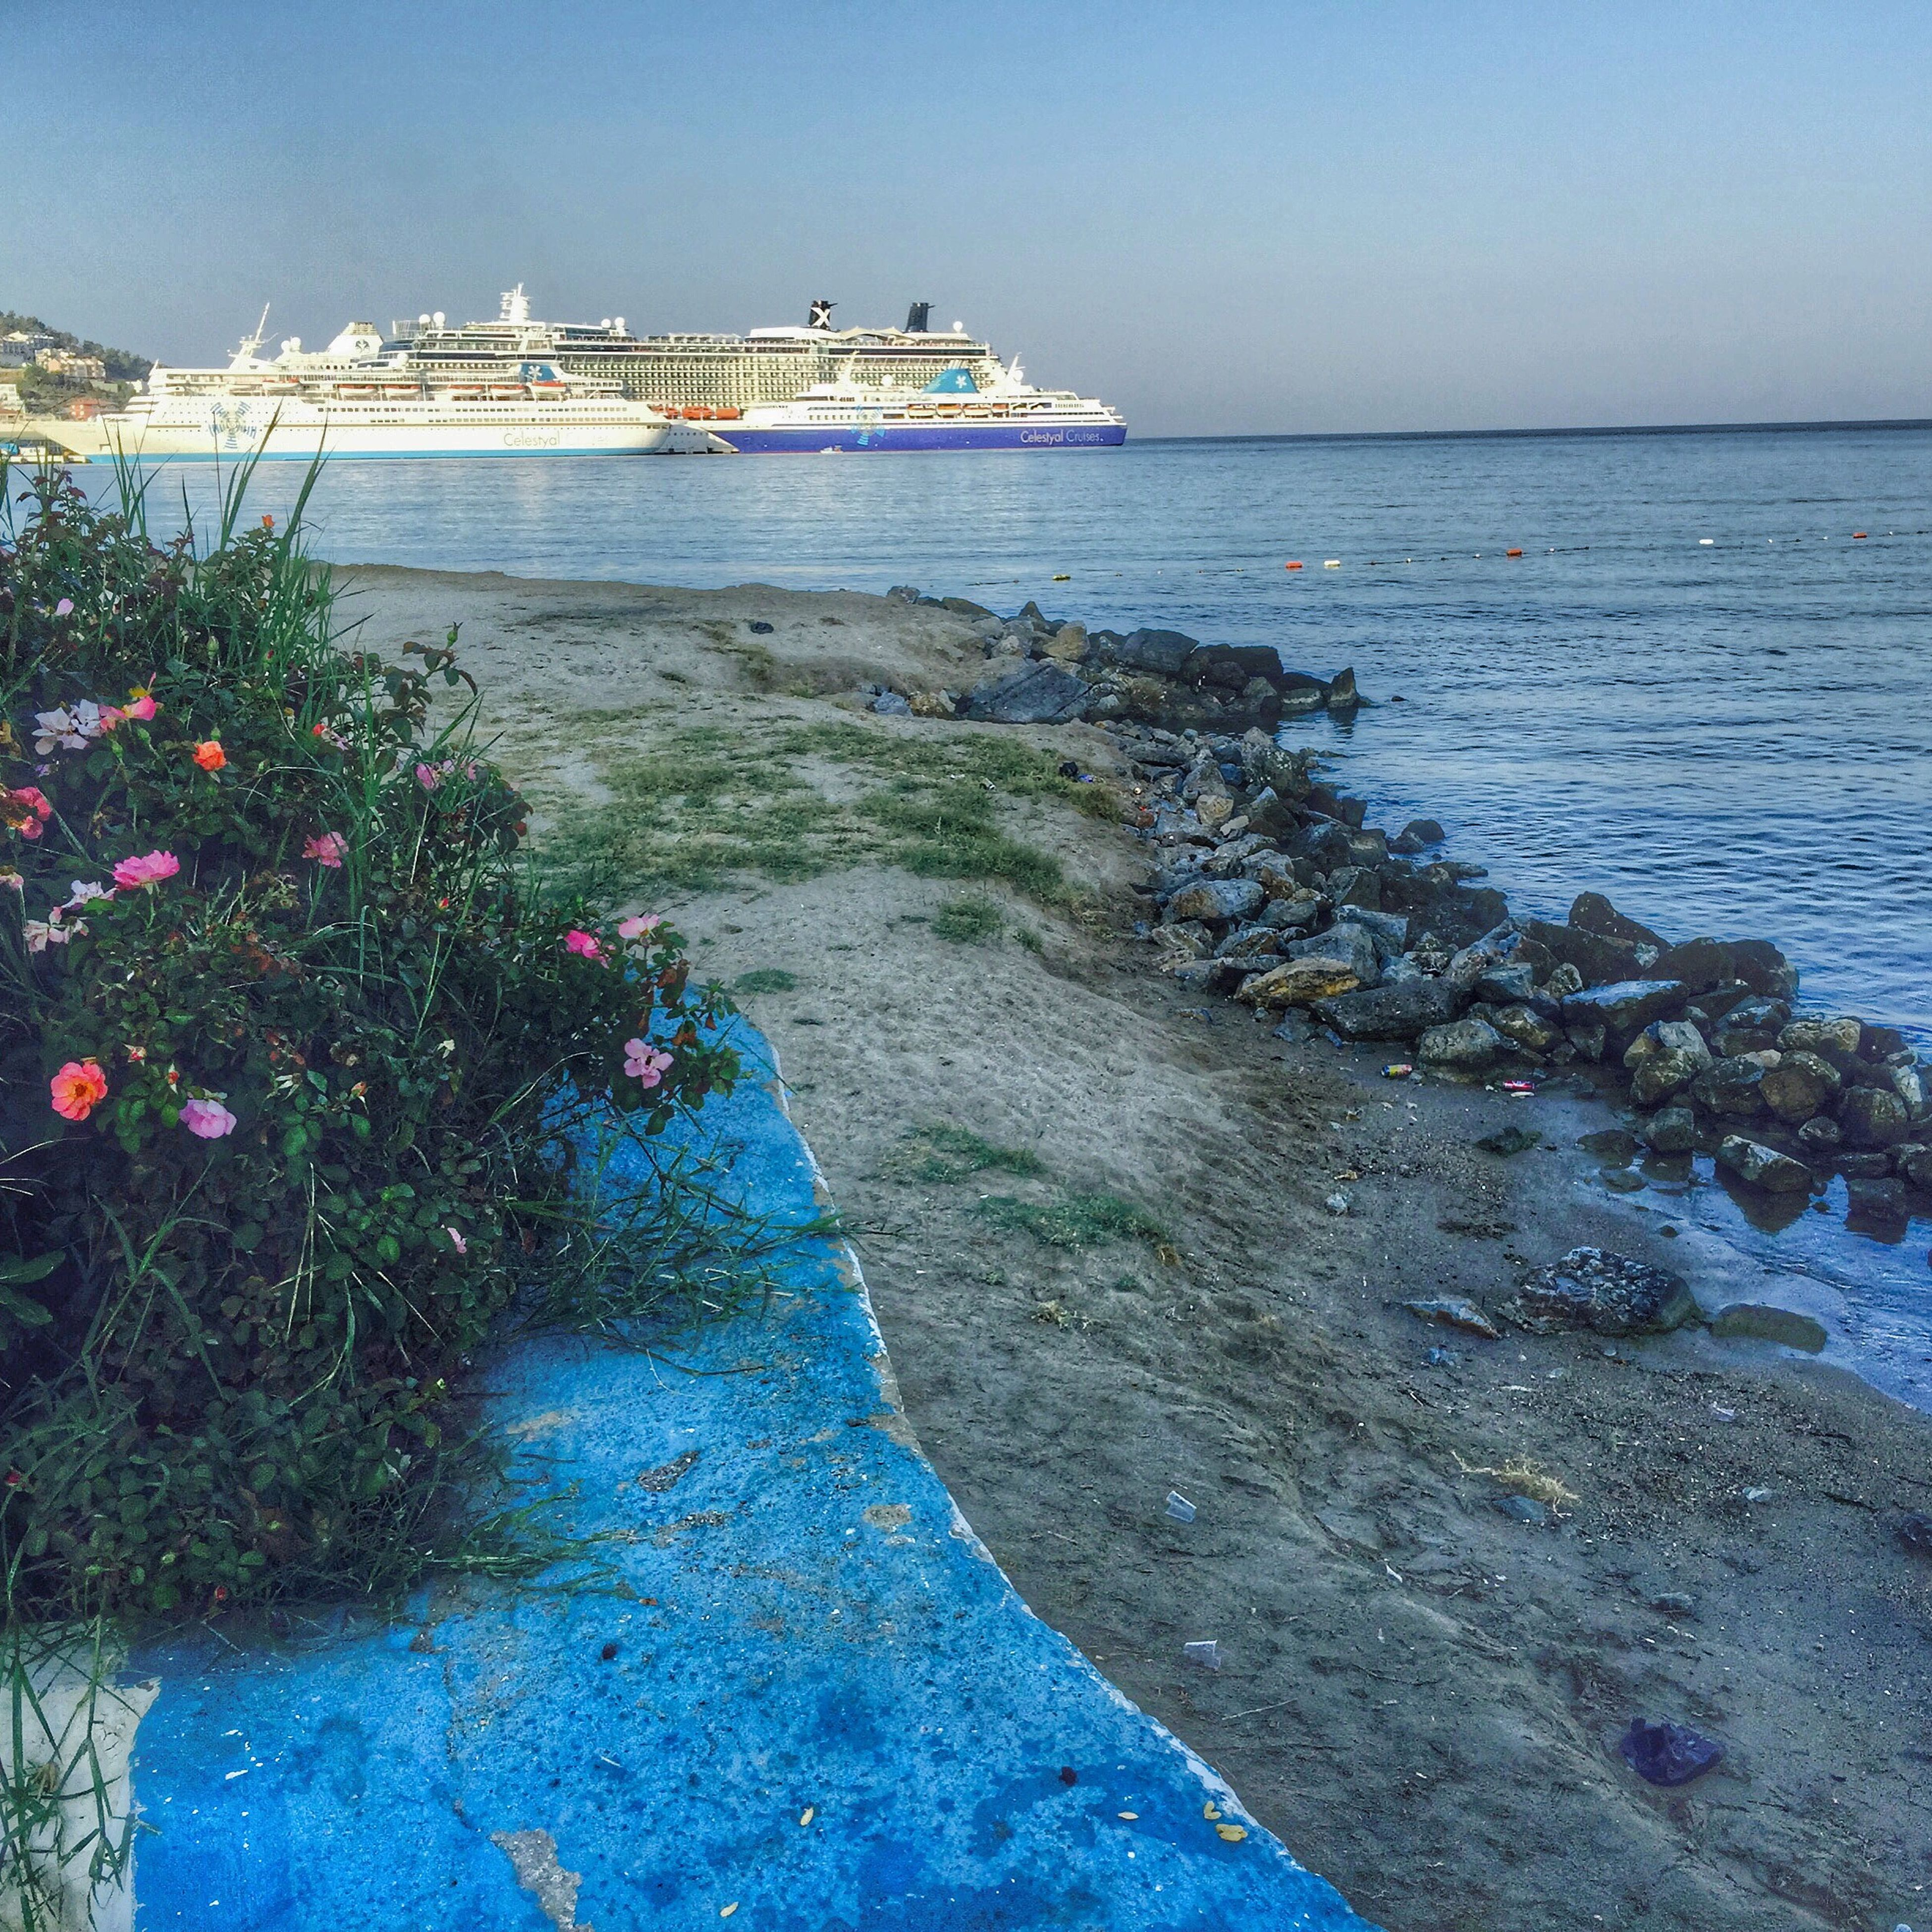 sea, water, blue, horizon over water, tranquility, tranquil scene, nature, beauty in nature, scenics, plant, clear sky, growth, sky, beach, sunlight, tree, shore, idyllic, day, outdoors